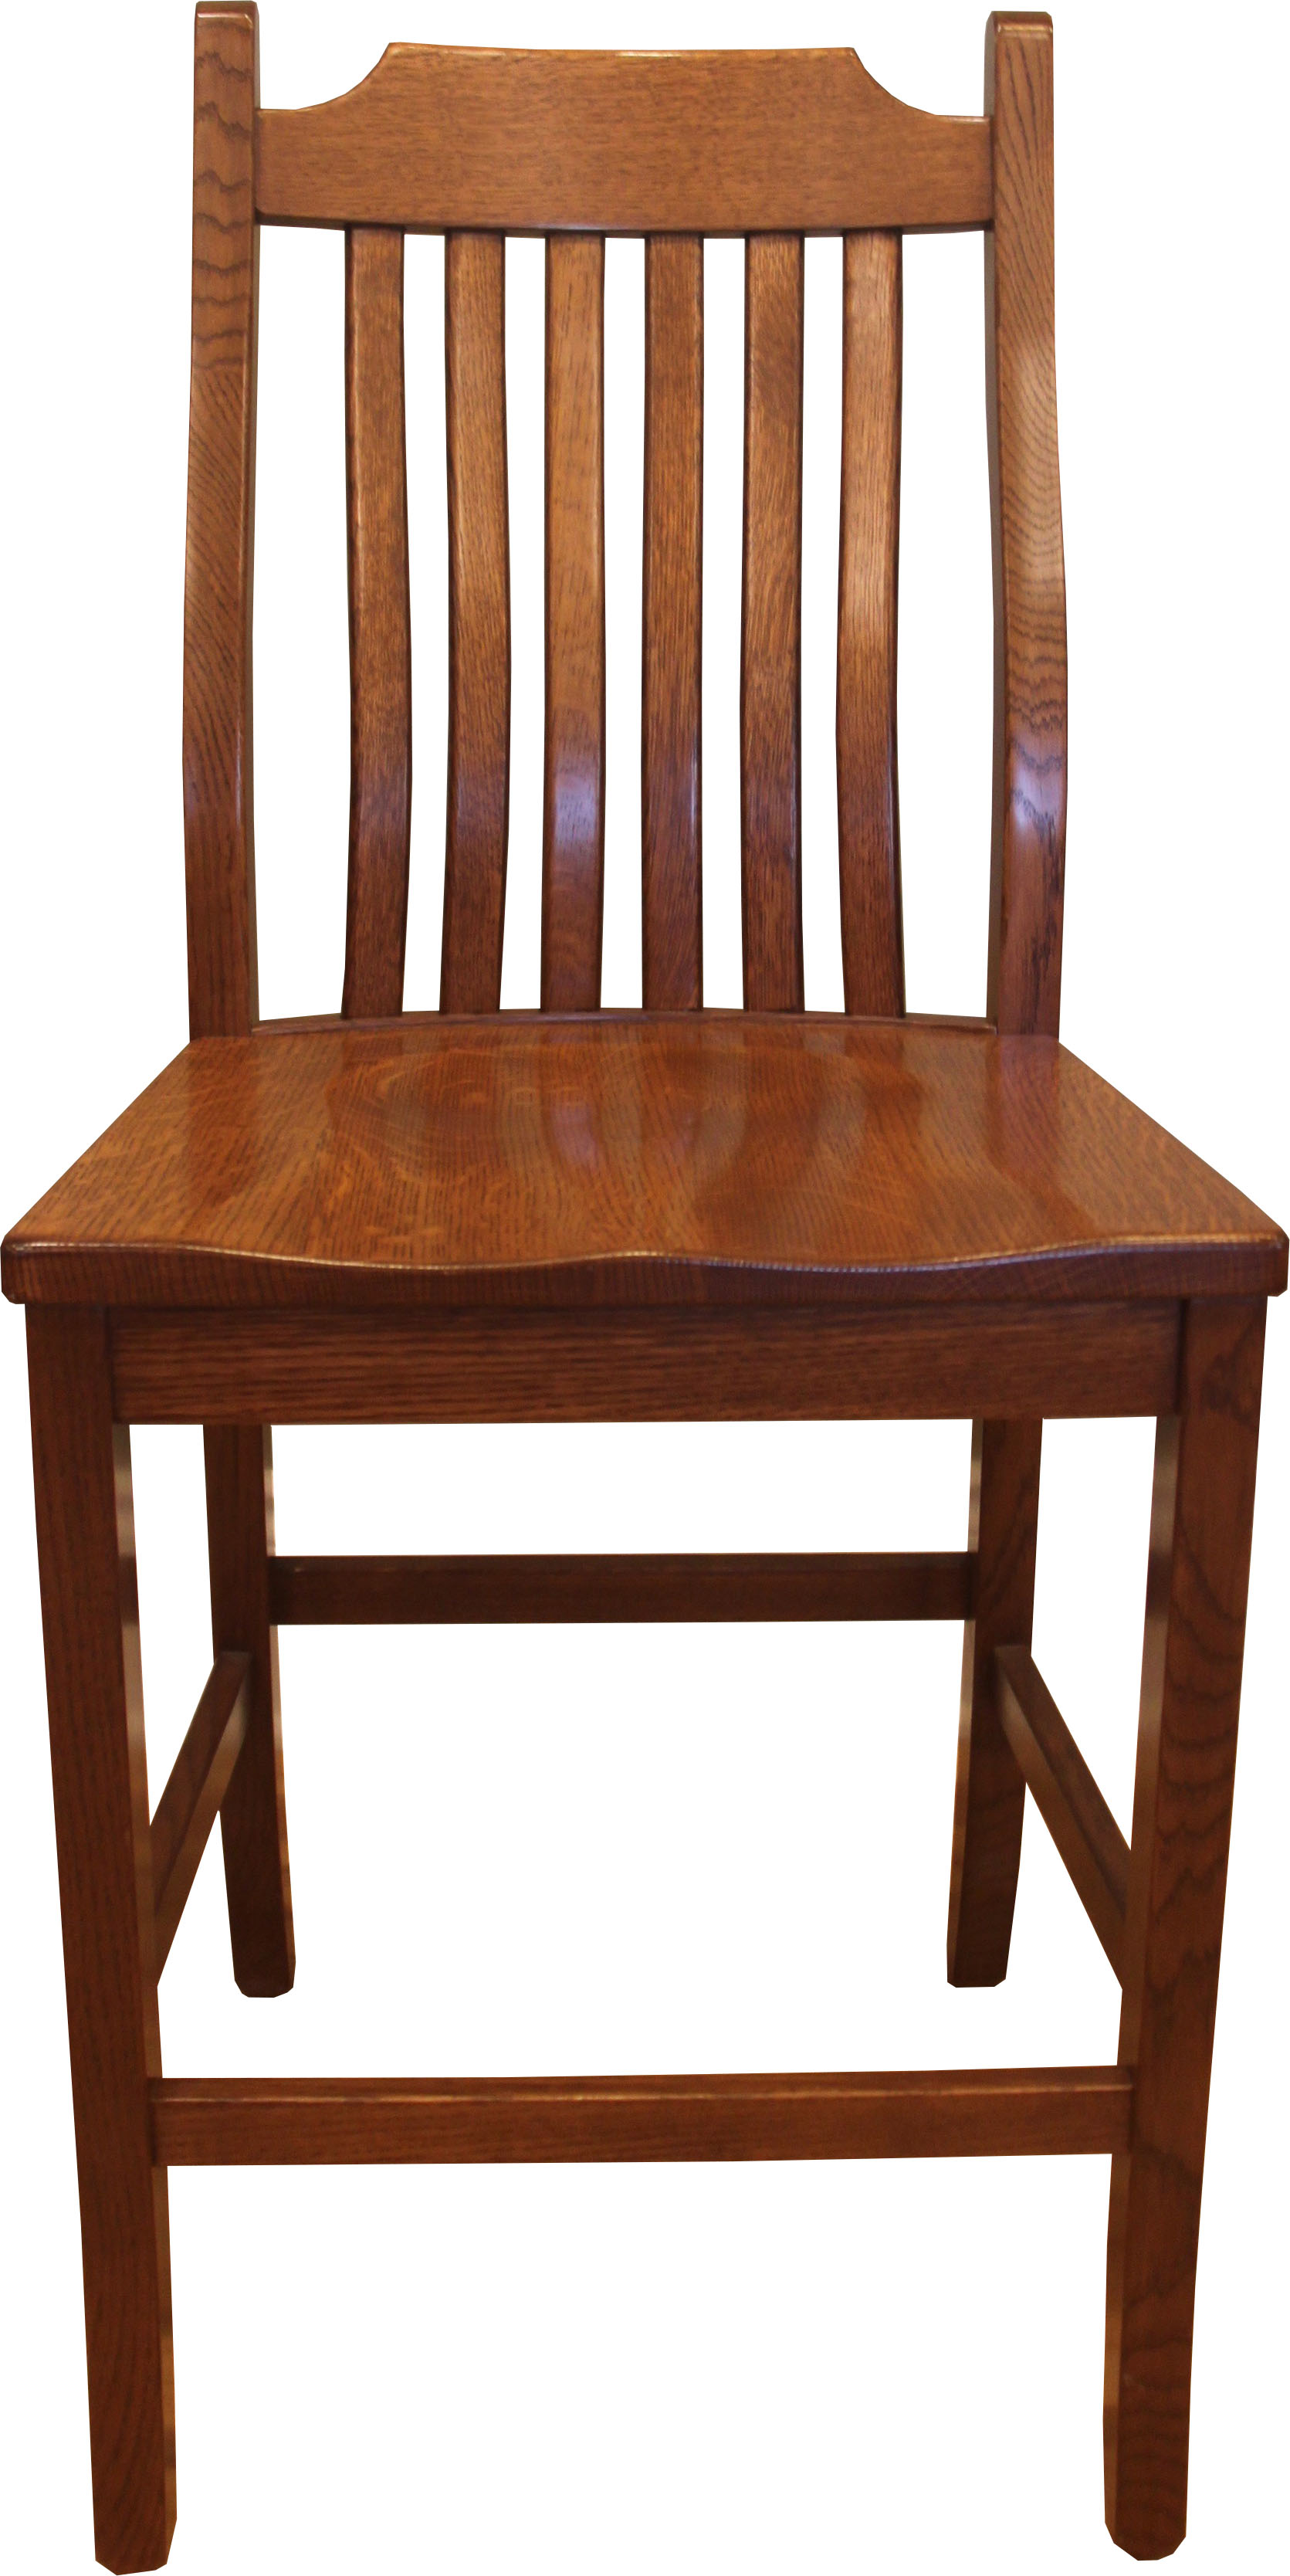 Bent mission bar chair this oak house handcrafted